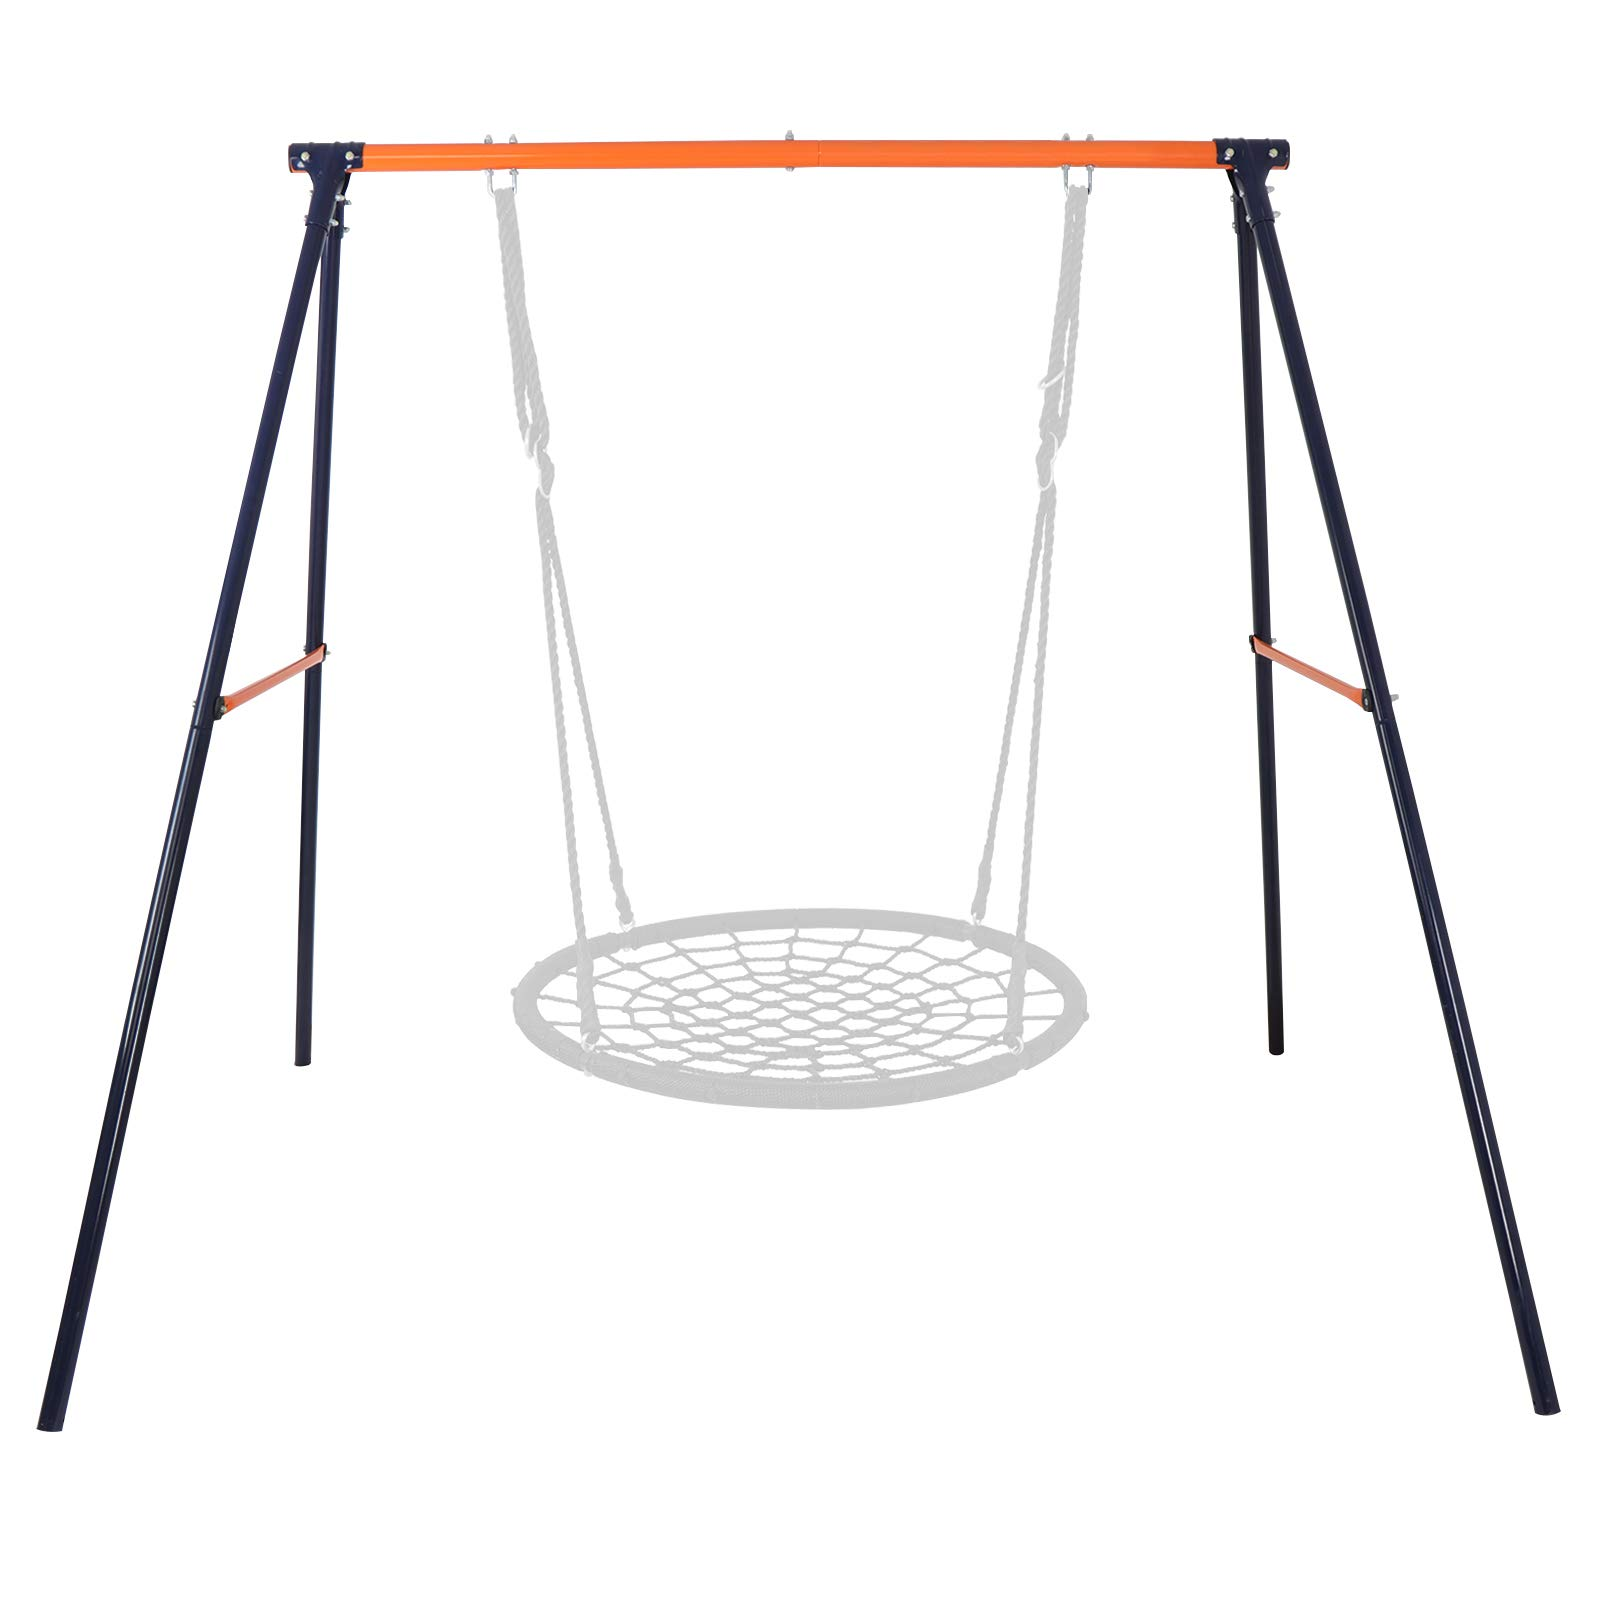 SUPER DEAL Extra Large Heavy Duty All-Steel All Weather A-Frame Swing Frame Set Metal Swing Stand, 72'' Height 87'' Length, Fits for Most Swings, Fun for Kids (Swing Frame) by SUPER DEAL